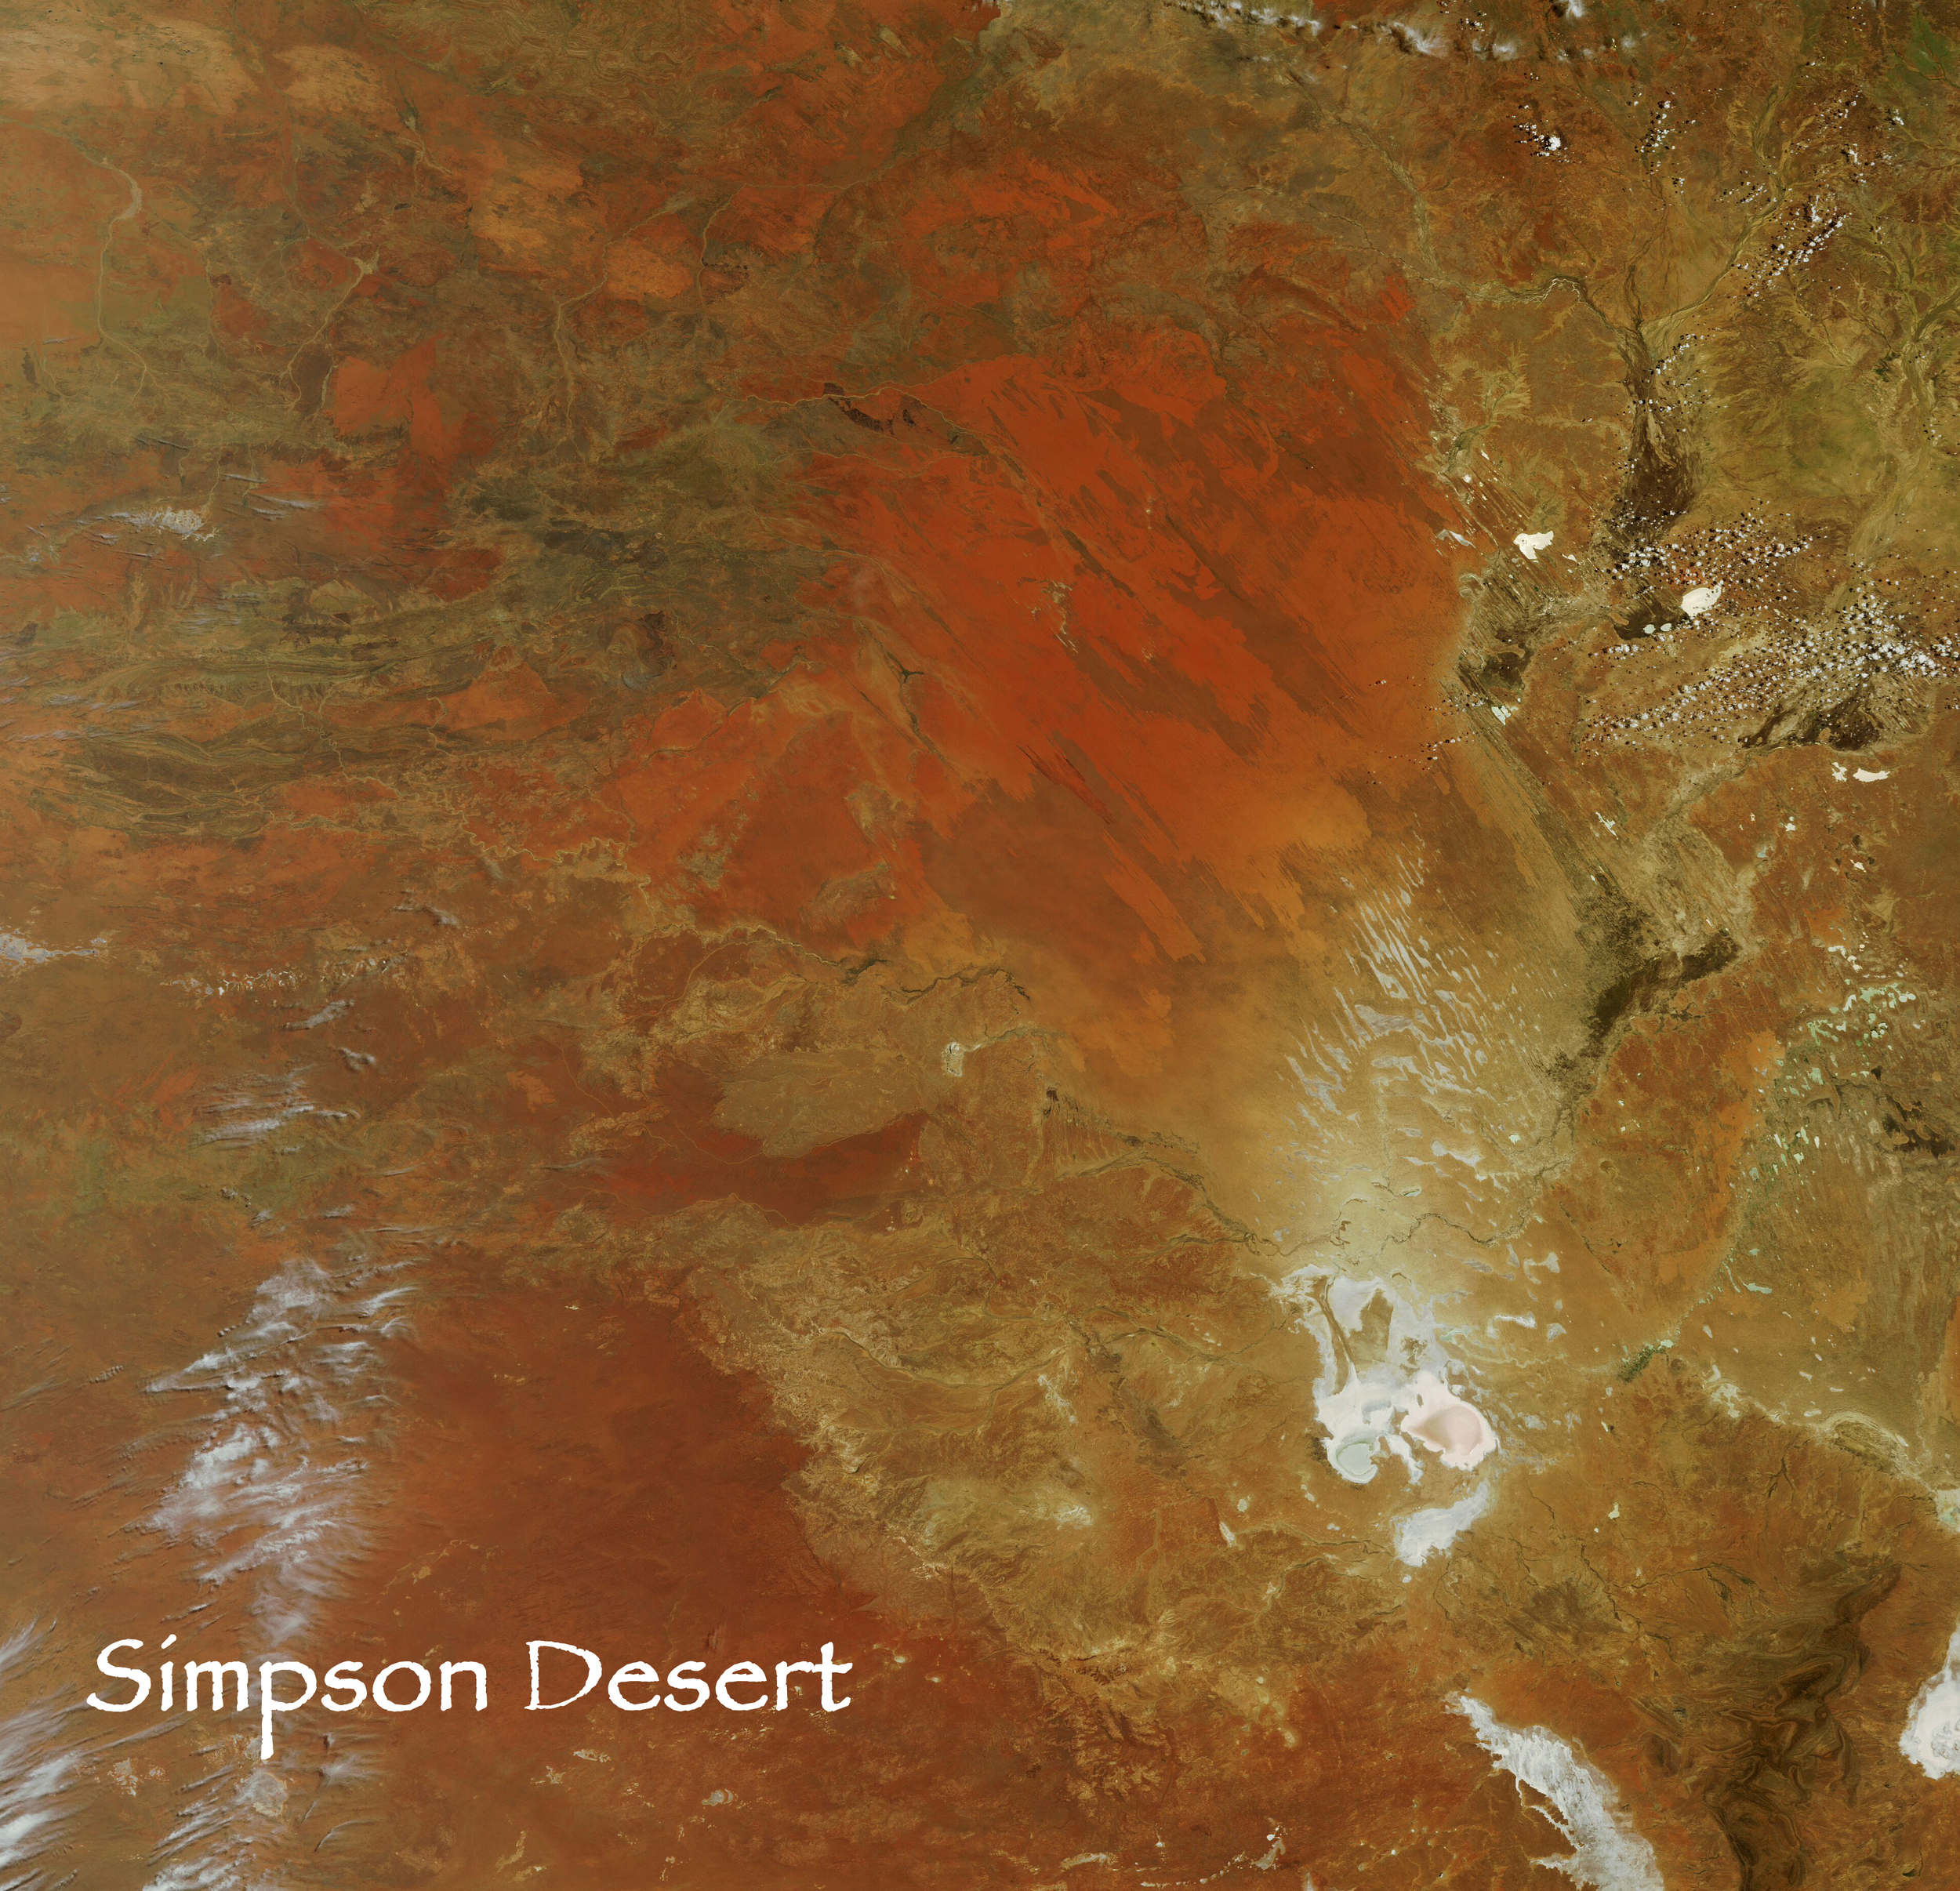 The world's largest parallel sand ridge desert. reconnxpedition travelled right across the desert in a wobbly line from west to east.  The Walkabout Expedition route was from the west of the desert to Lake Eyre in the southeast.